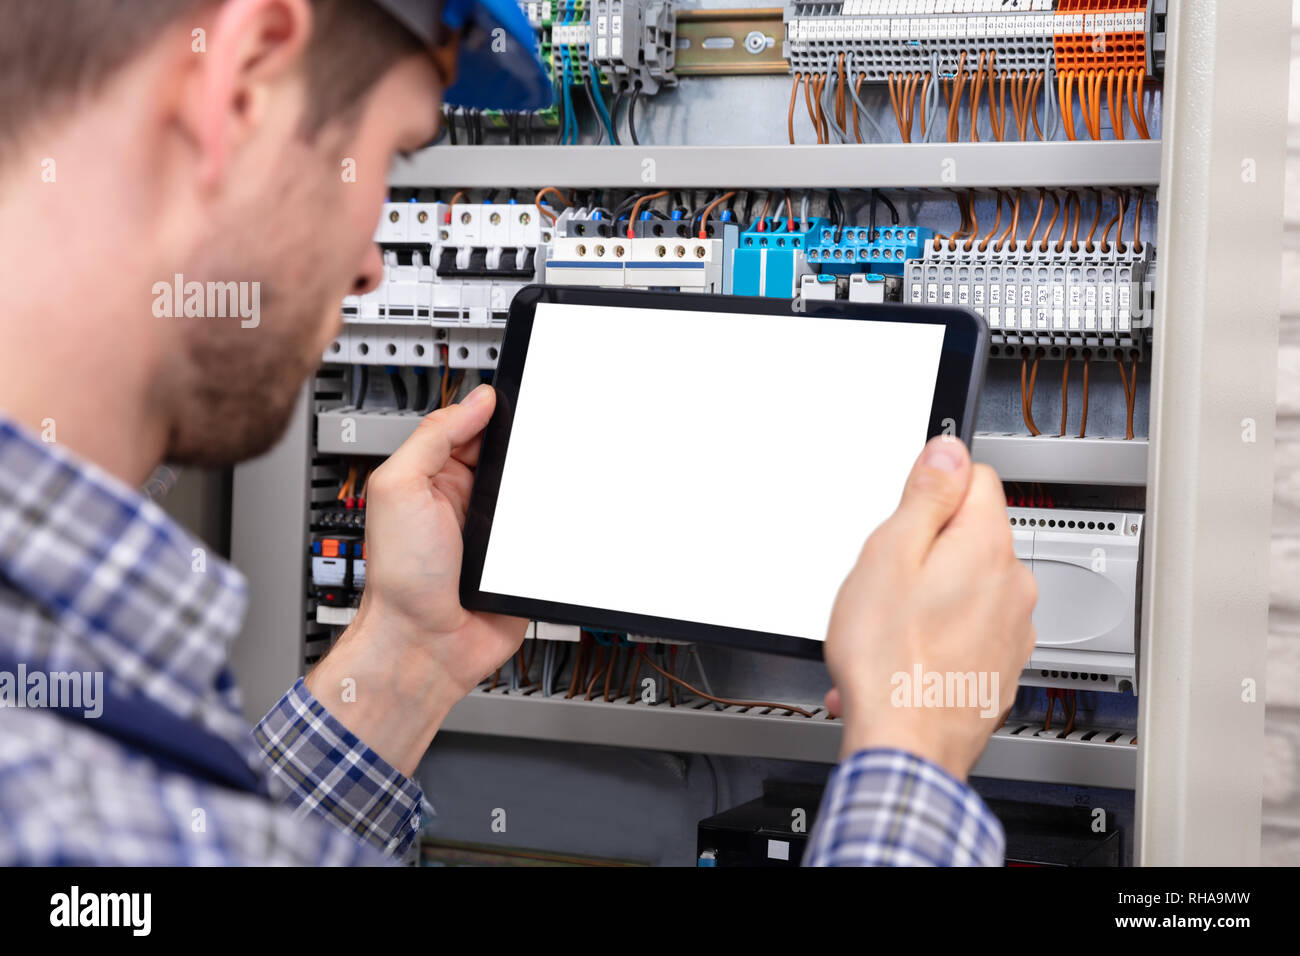 hight resolution of technician holding digital tablet with blank screen in front of fuse box stock image